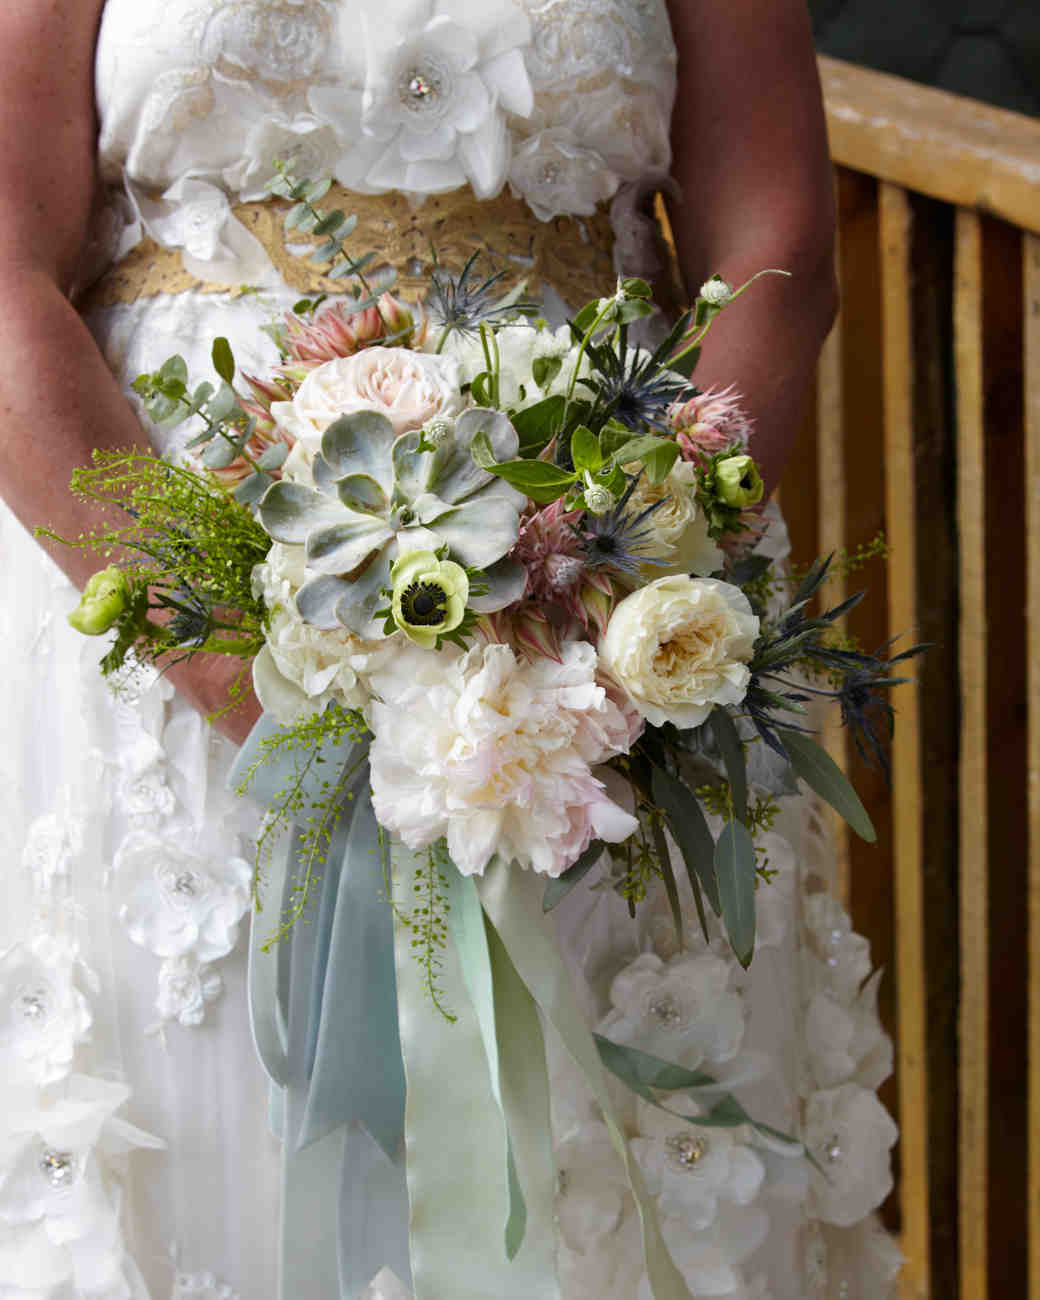 bouquet-brides-2-005-d111381.jpg